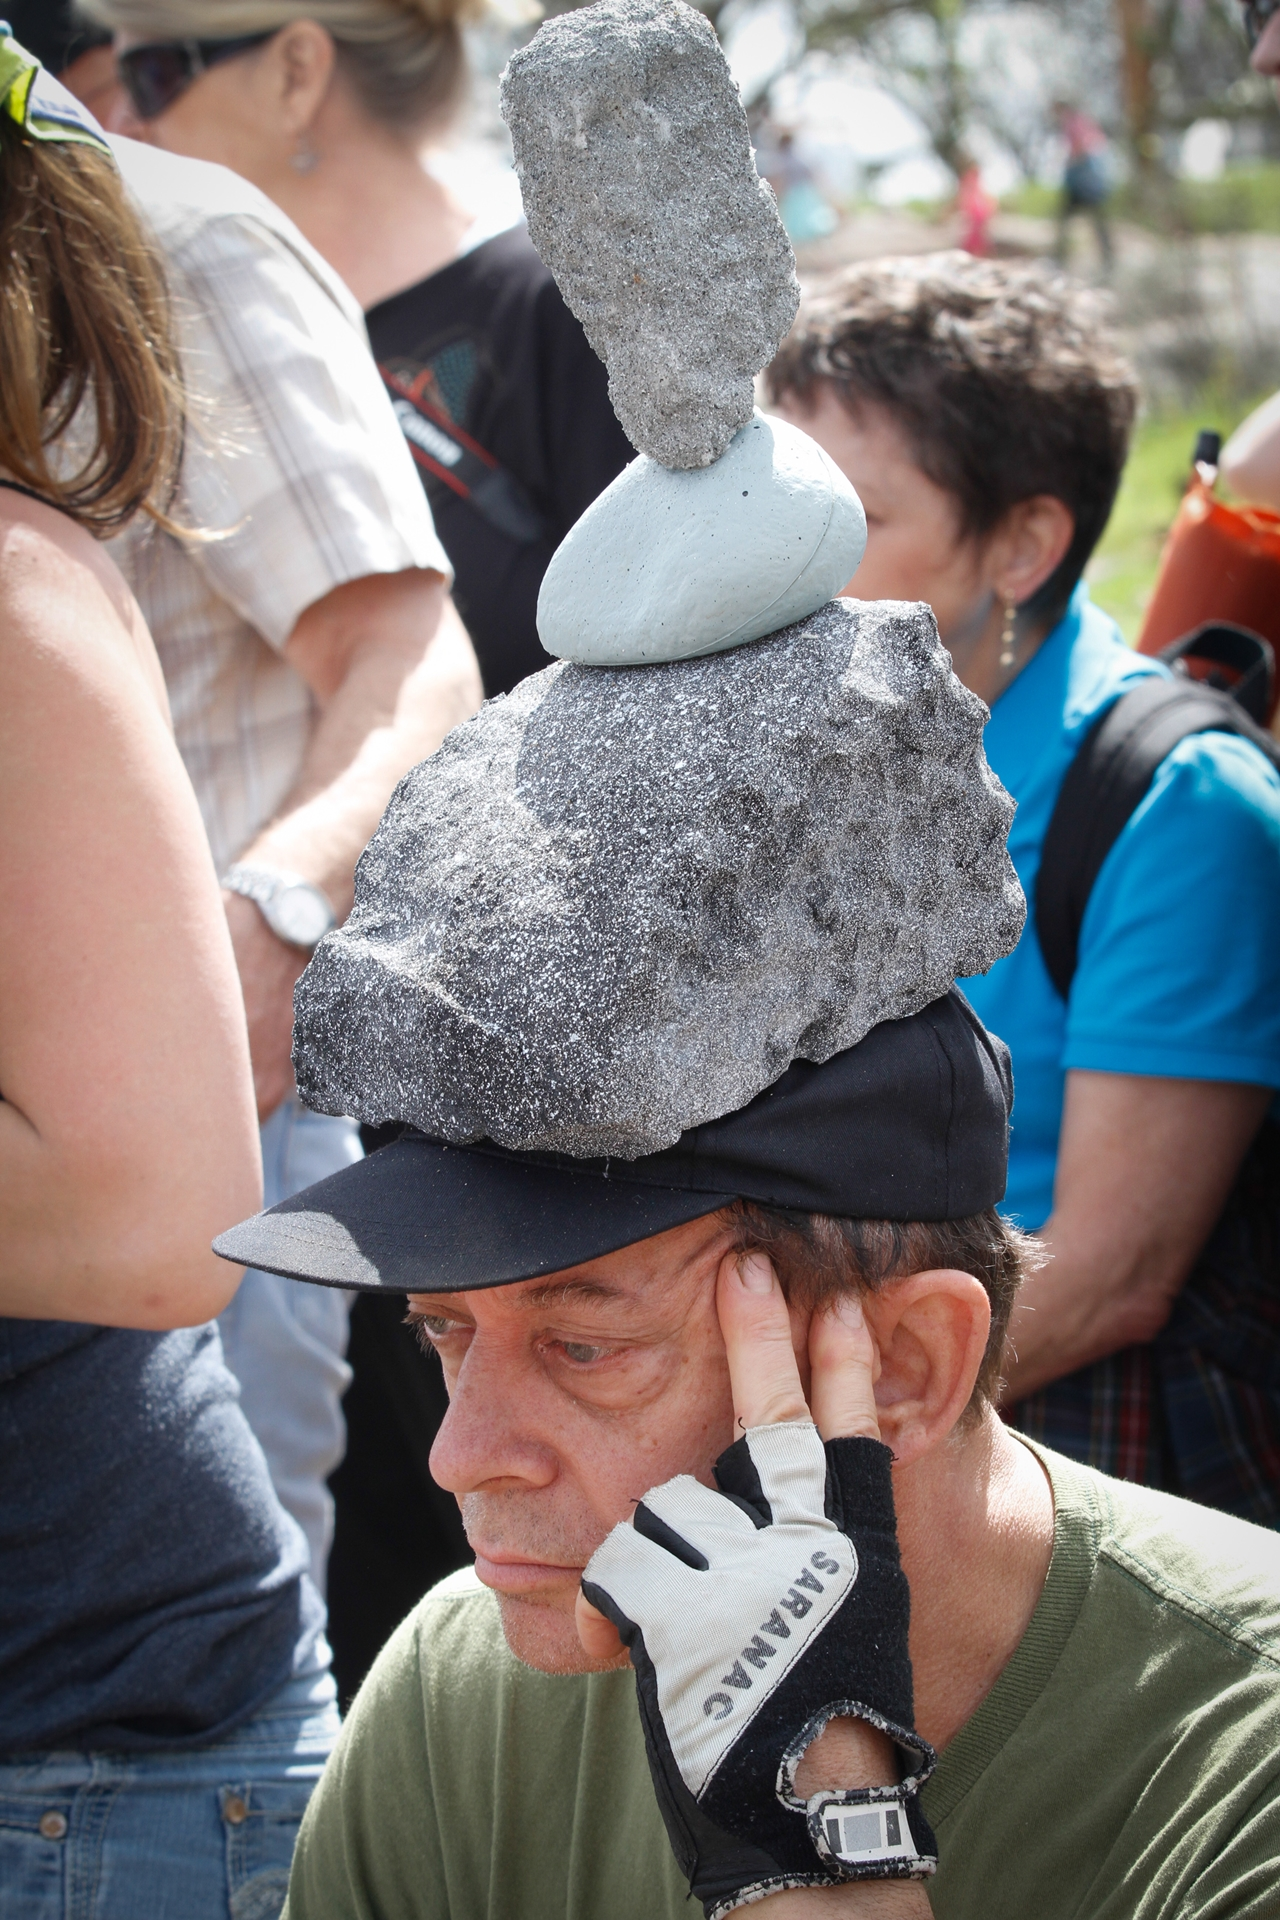 The world championship balancing rocks 2016 17